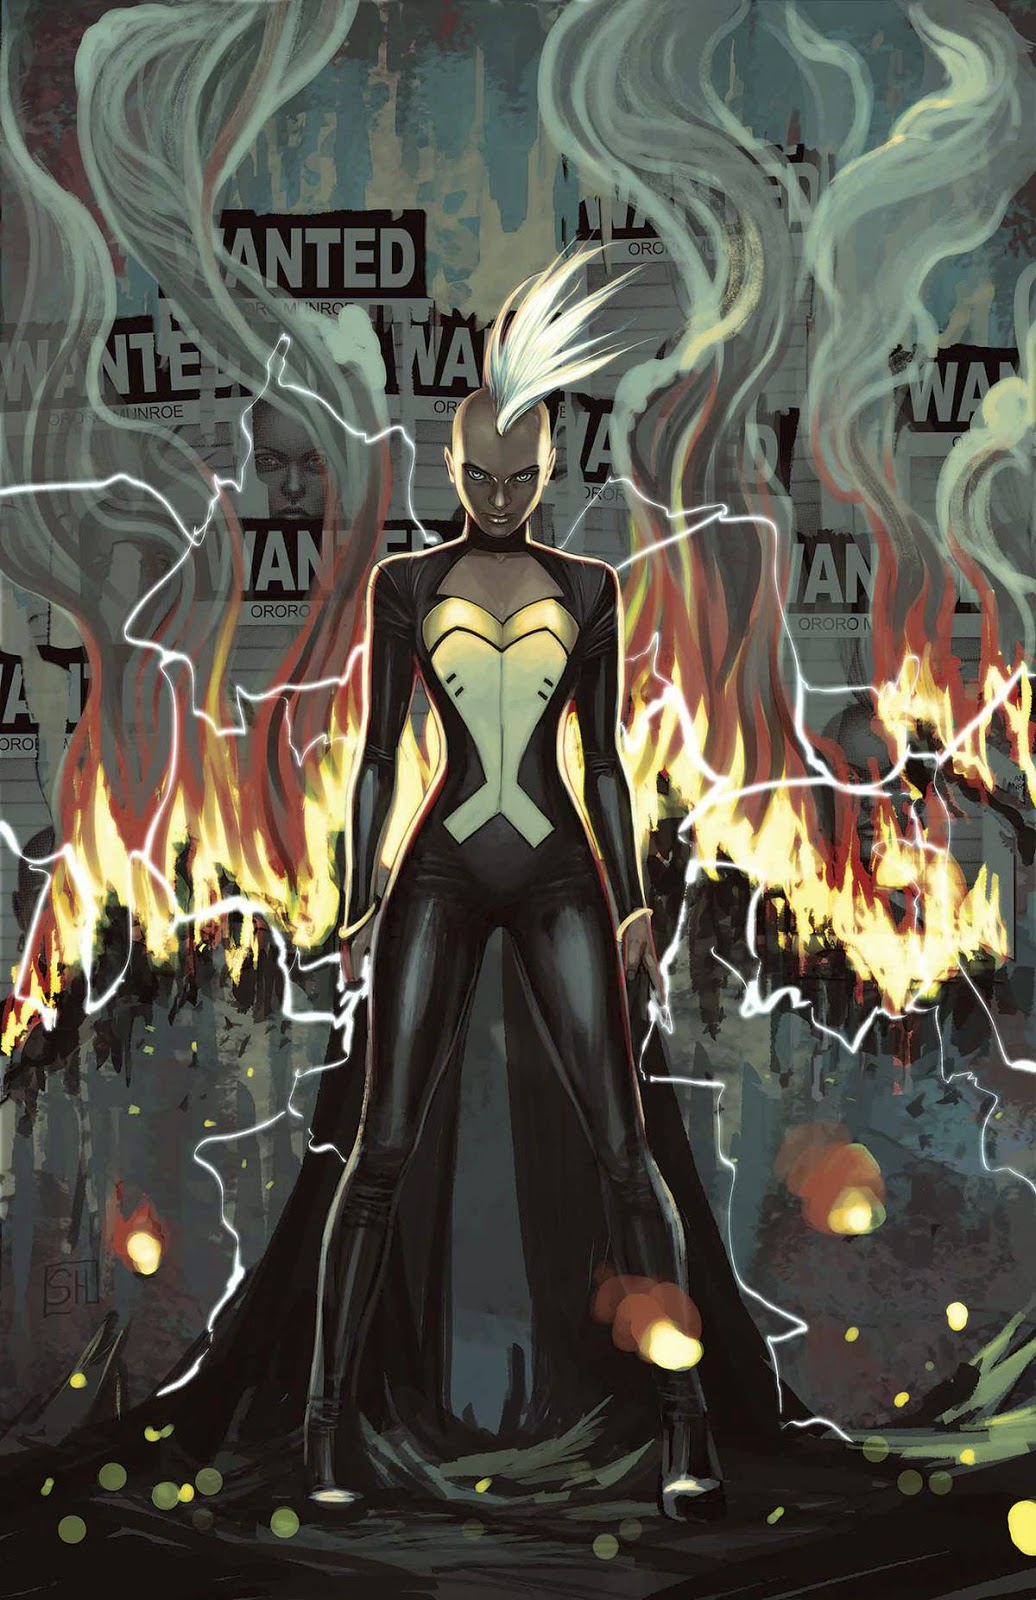 Storm lights up the issue